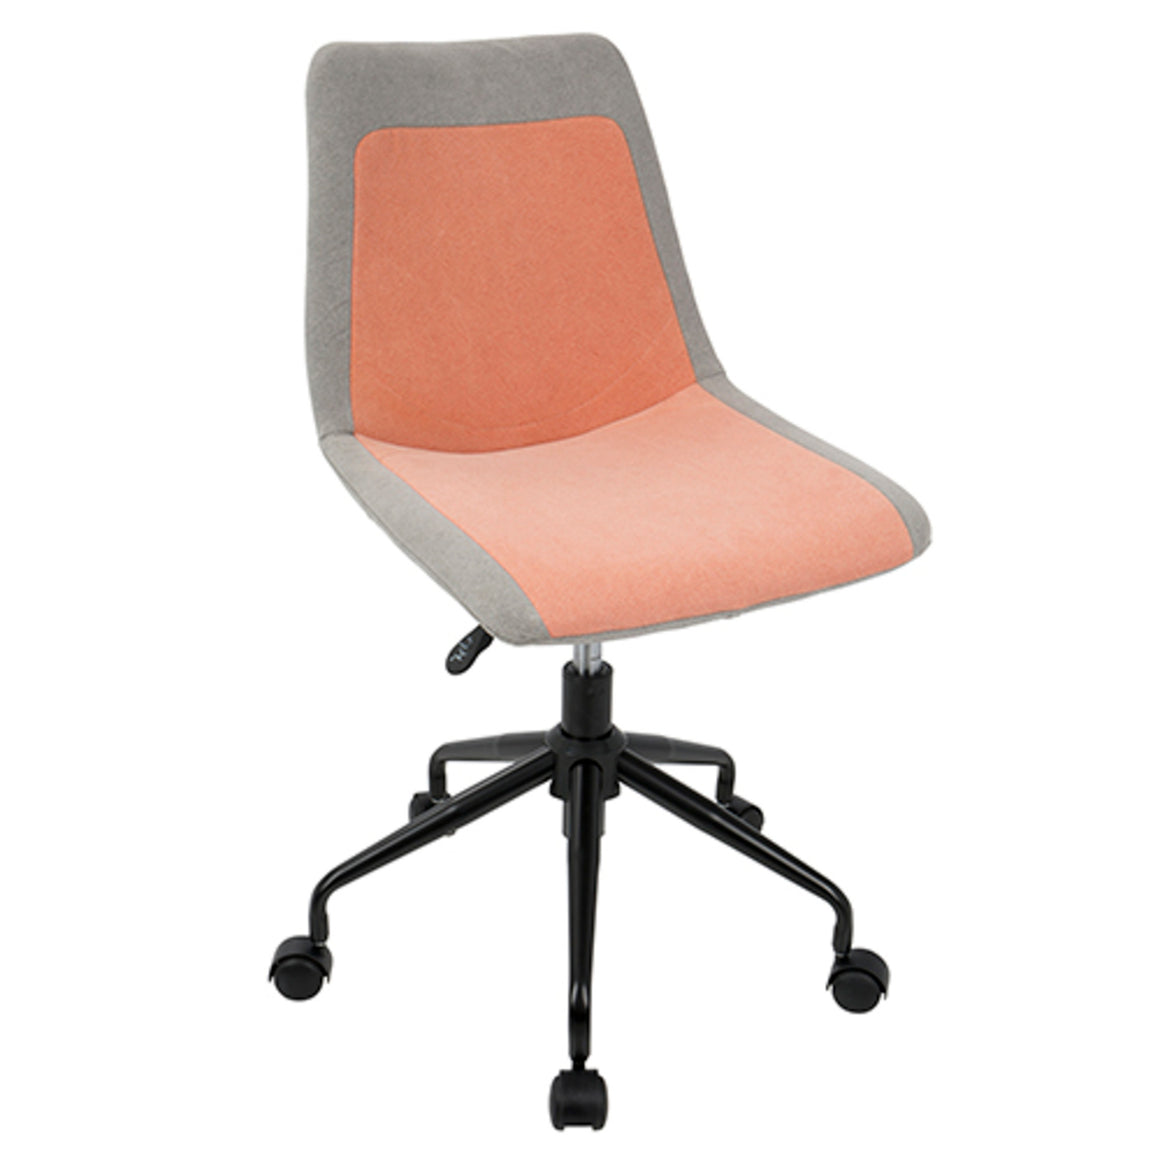 Orzo Height Adjustable Task Chair in Black with Orange Denim Fabric by LumiSource